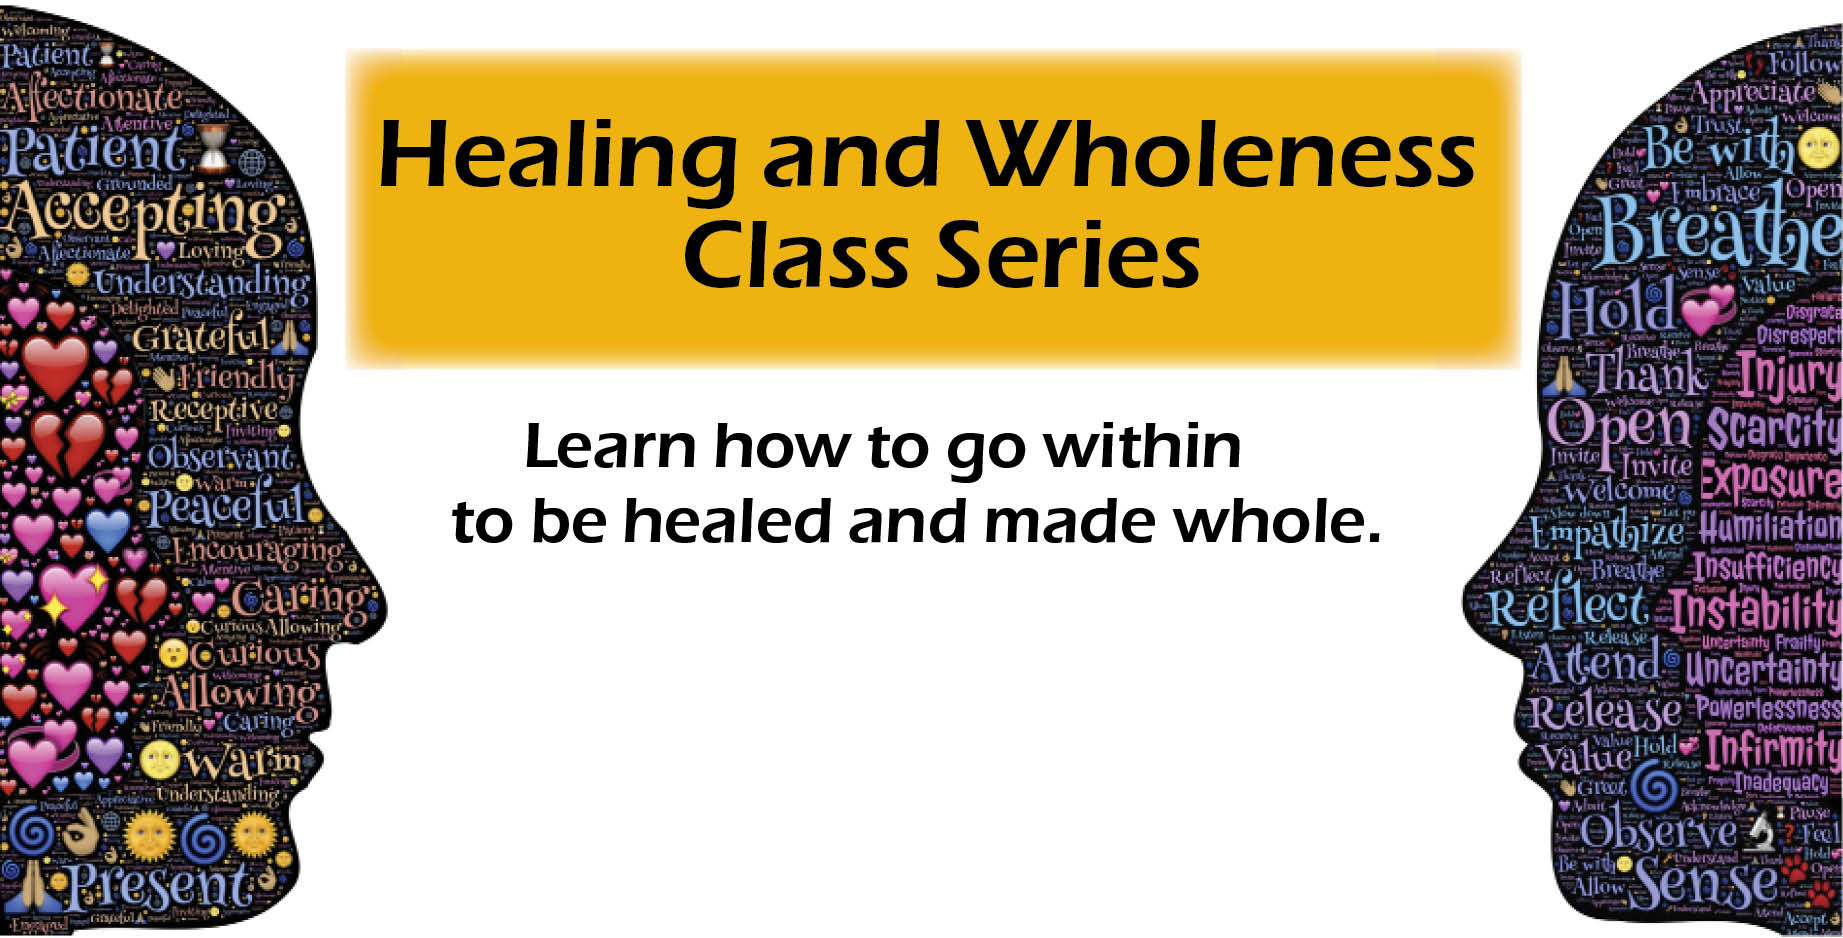 Healing wholeness banner ad